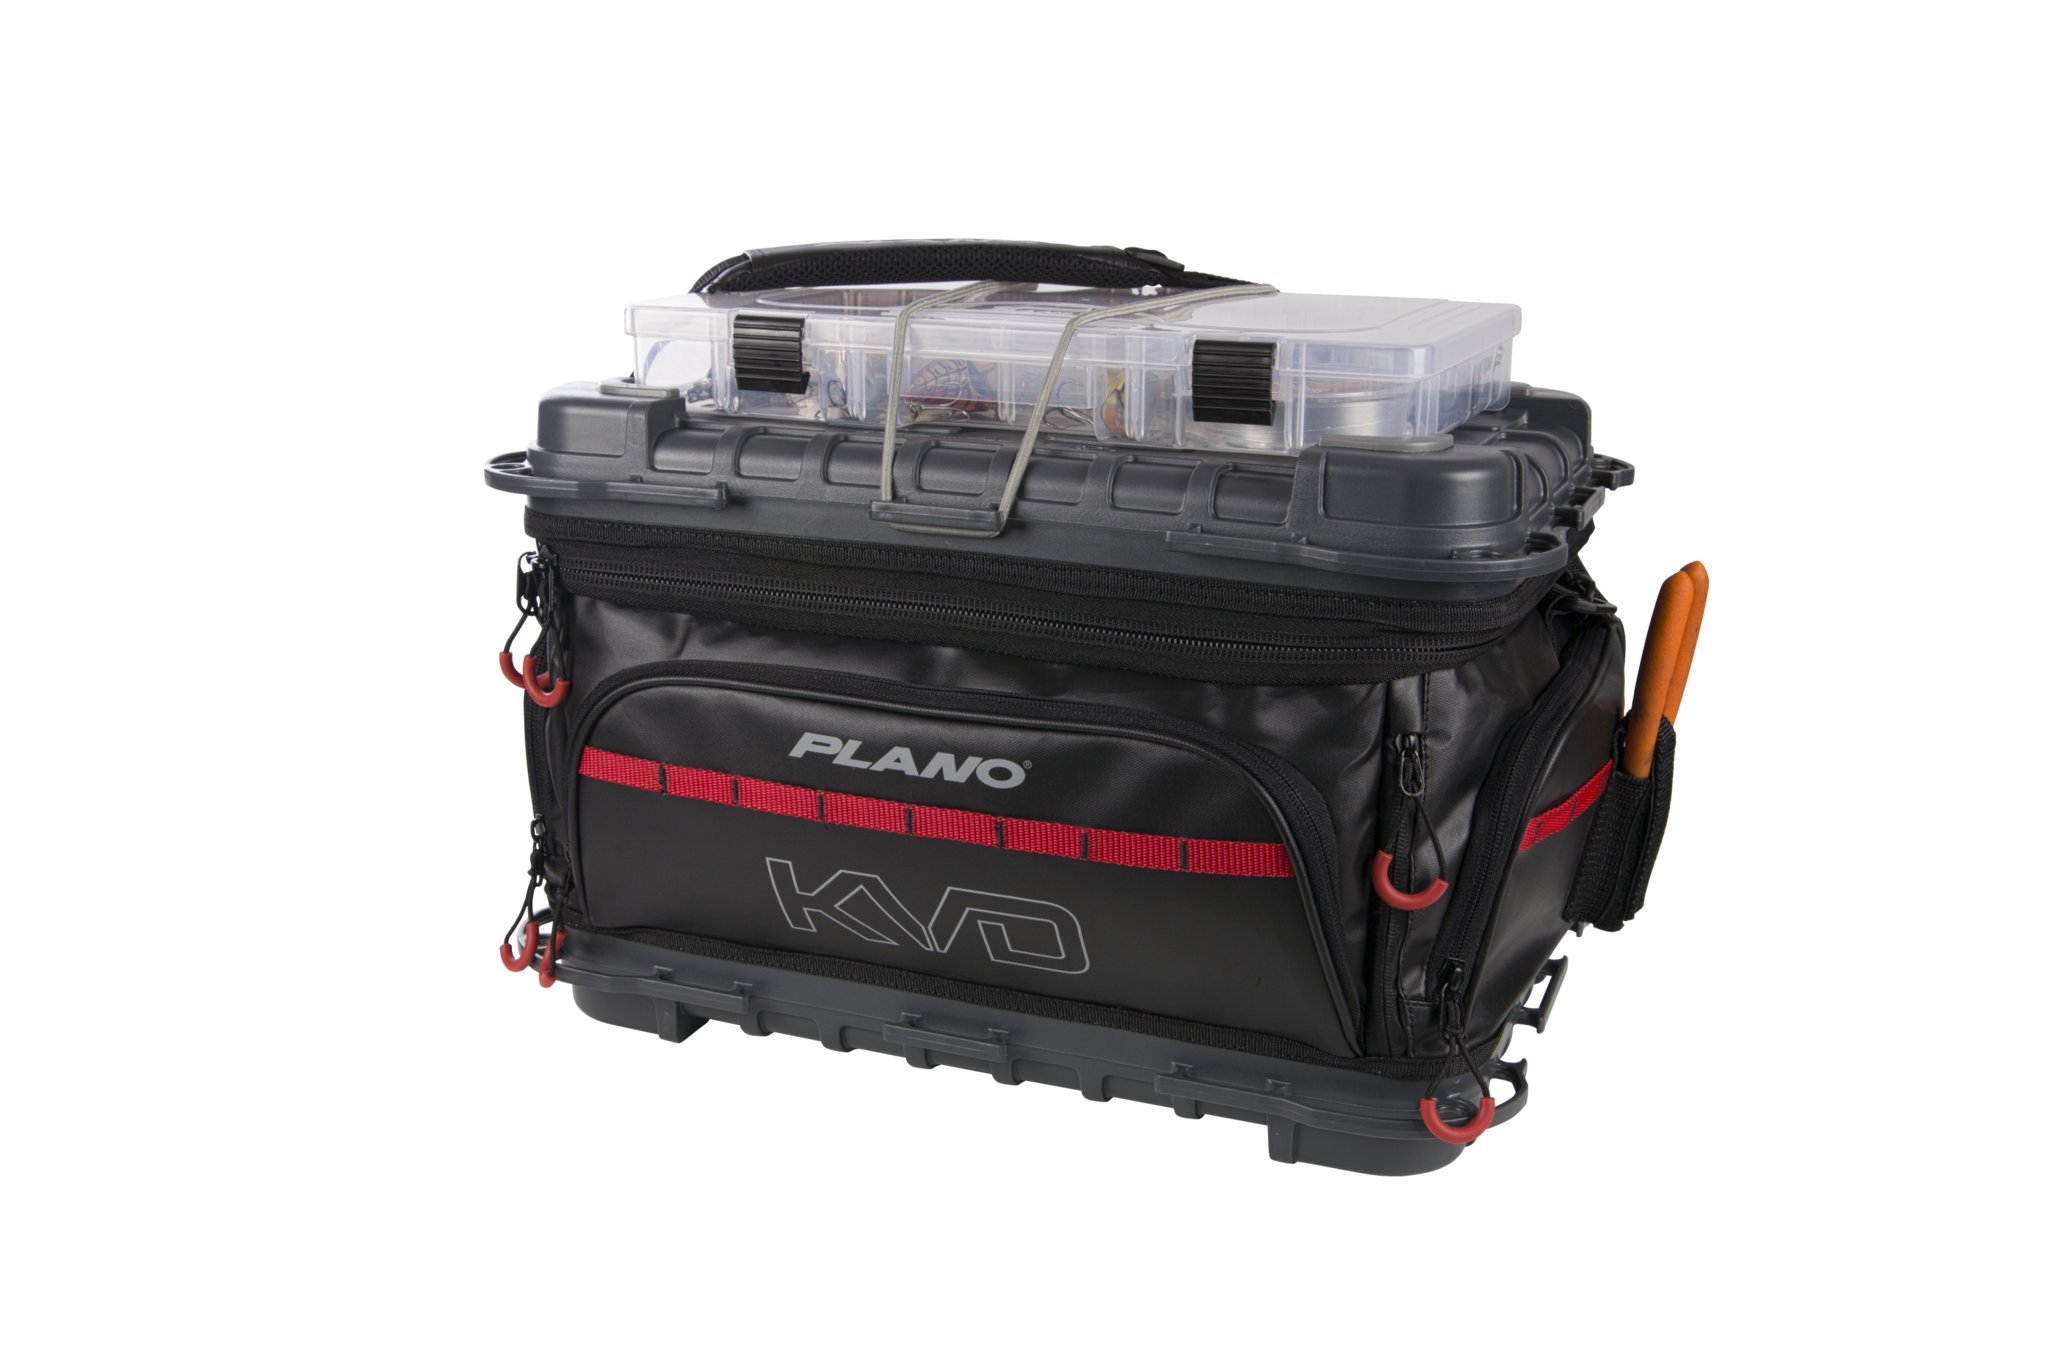 Plano PLAB37700 KVD Signature Series 3700 Size Tackle Bag, Black/Grey/Red by Plano